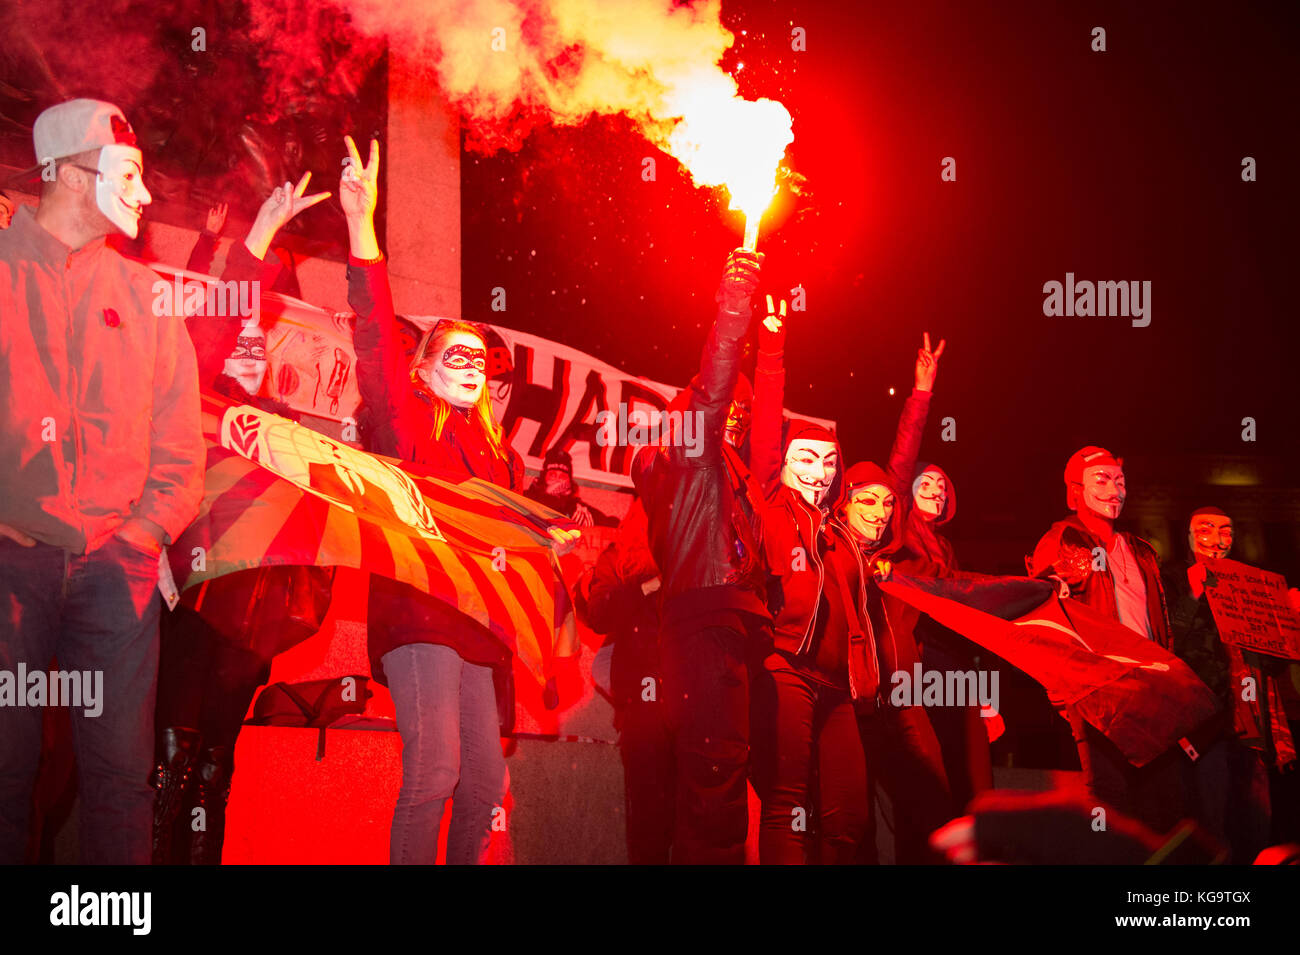 London, United Kingdom. 05th Nov, 2017. Million Mask March 2017 takes place in central London. A protester holds - Stock Image